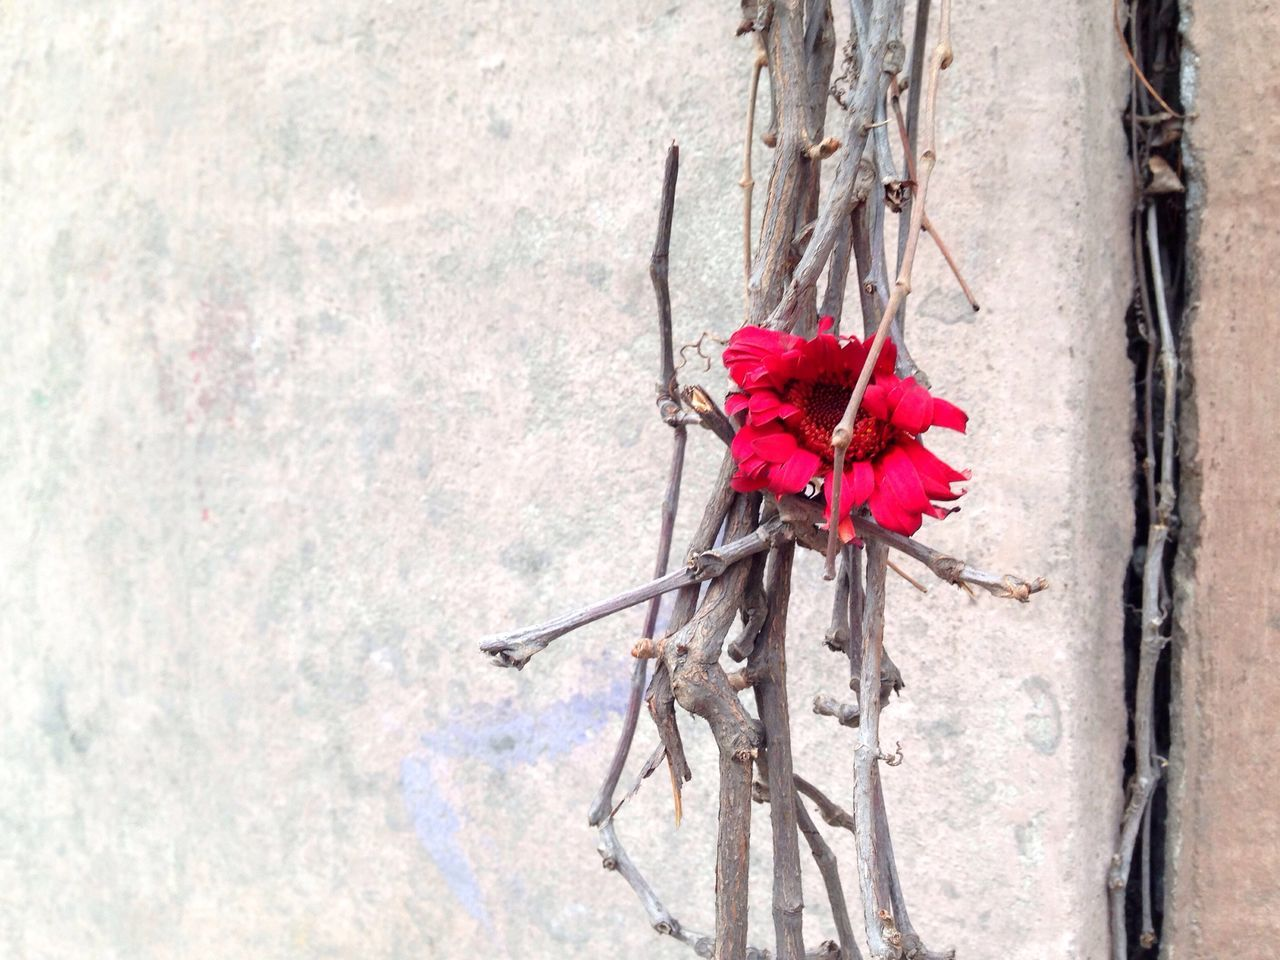 red, no people, flower, tied up, day, outdoors, close-up, nature